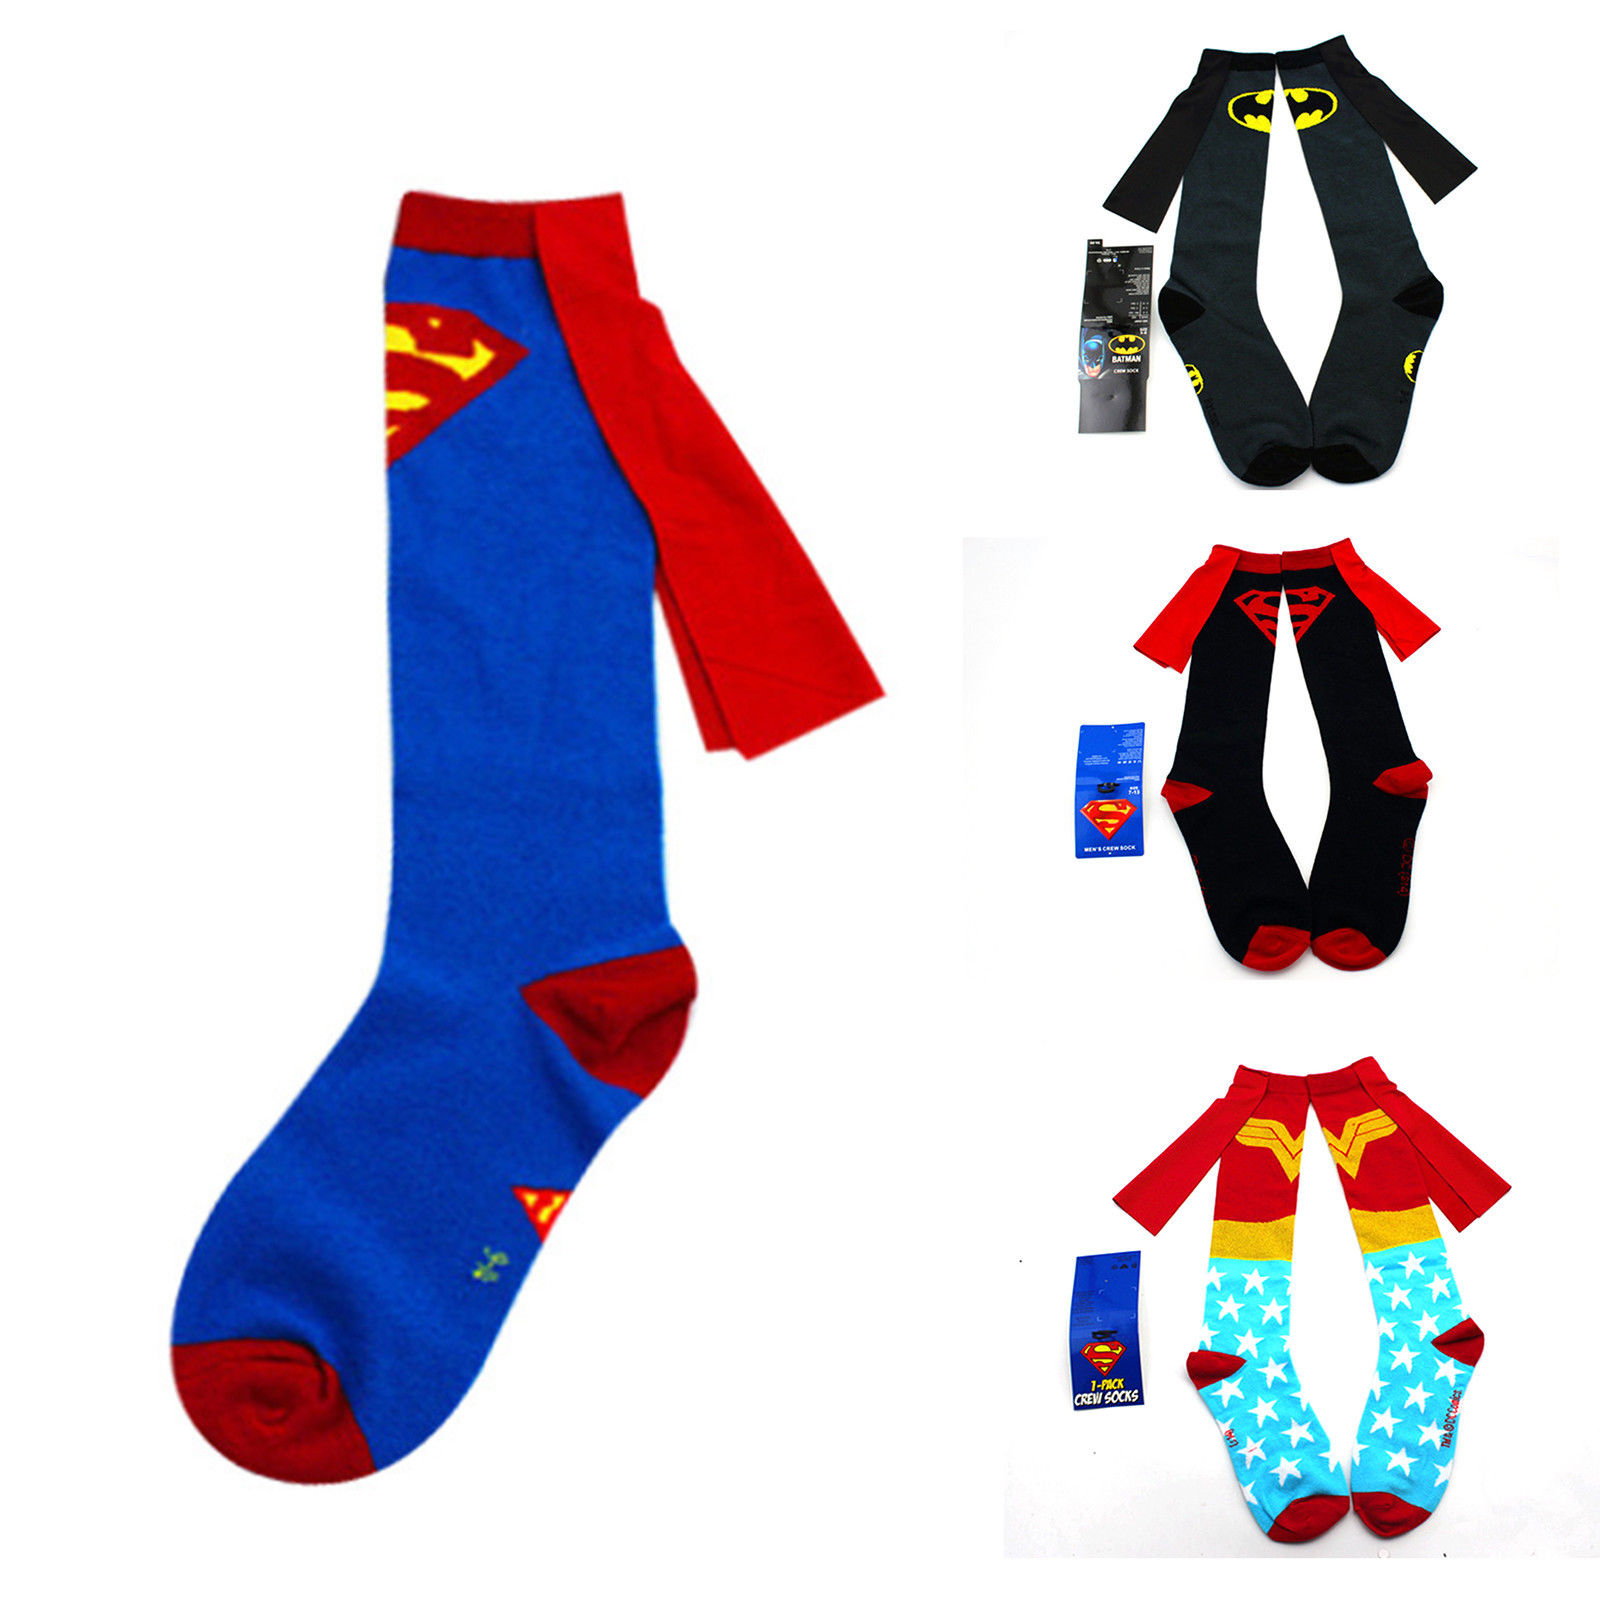 ee947e2792e Unisex Superhero Superman Batman Knee High Socks With Cape Soccer Cosplay  Socks